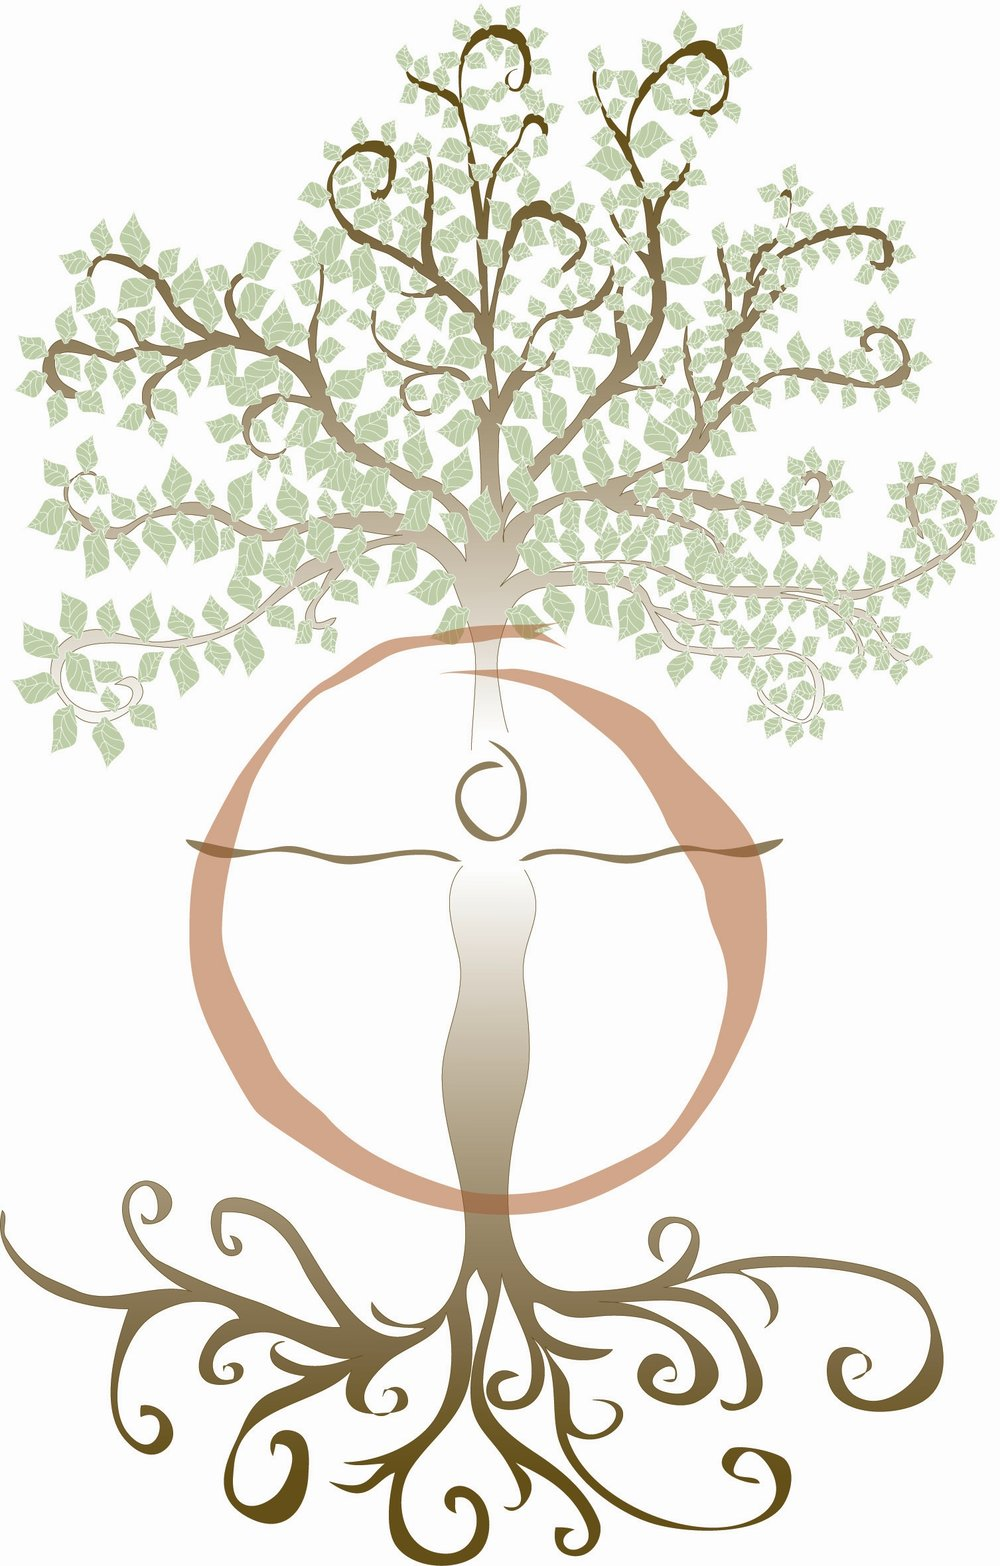 1-soma-earth-tree-woman-logo.jpg